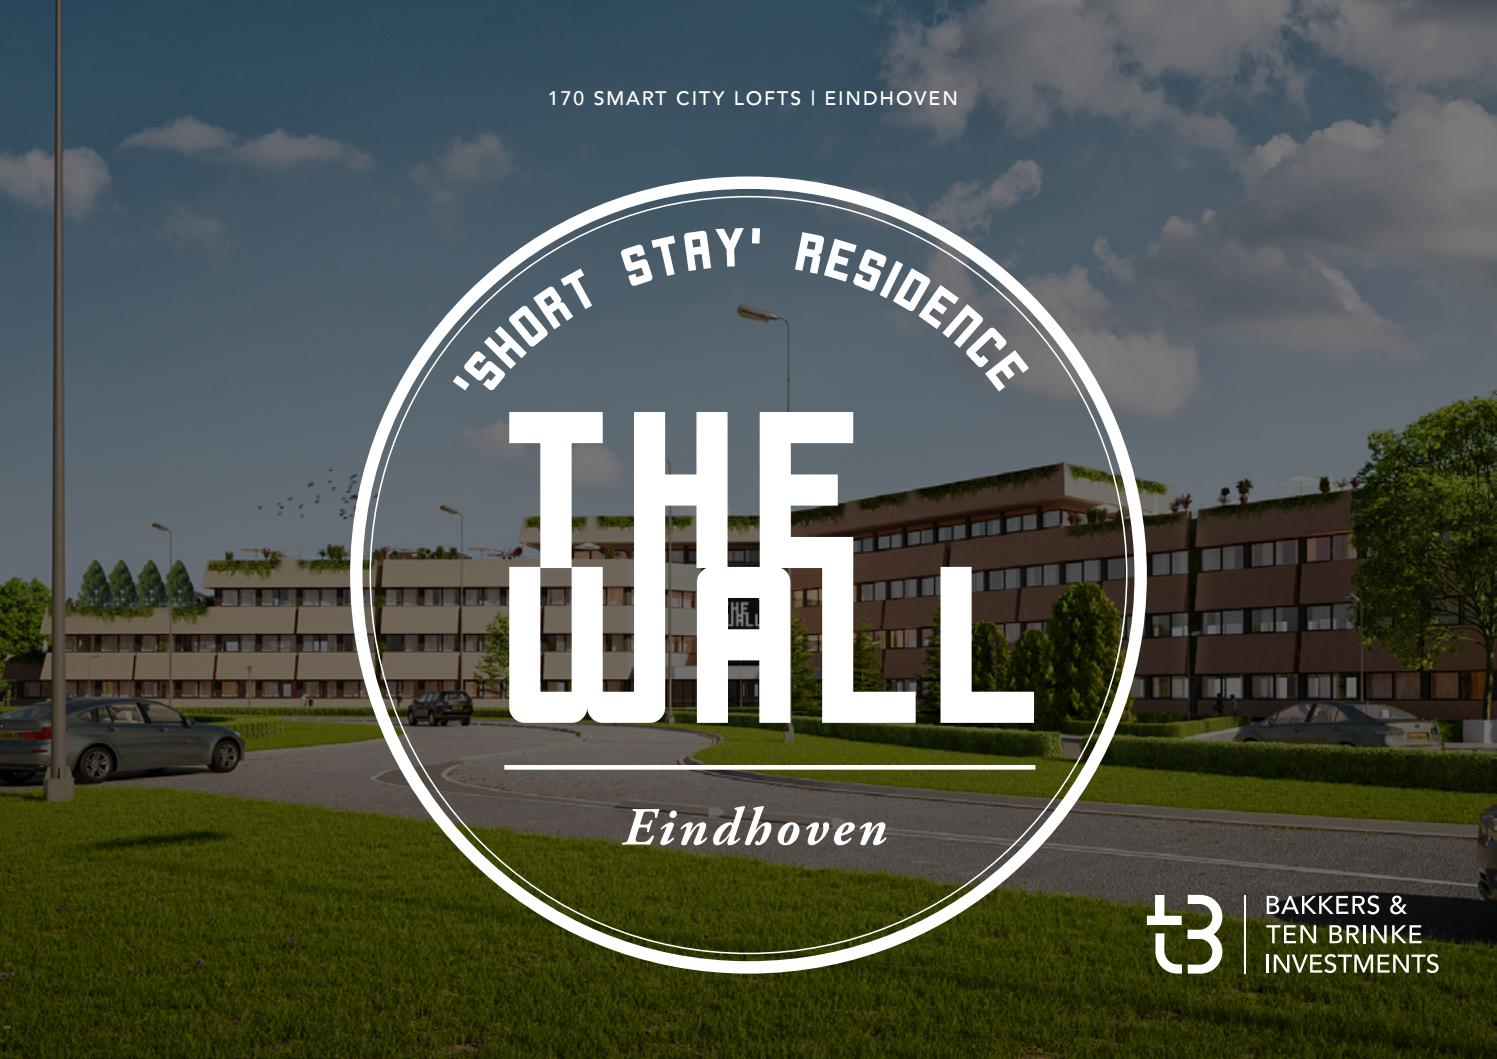 Wasmachine Onderdelen Eindhoven The Wall Short Stay Residence